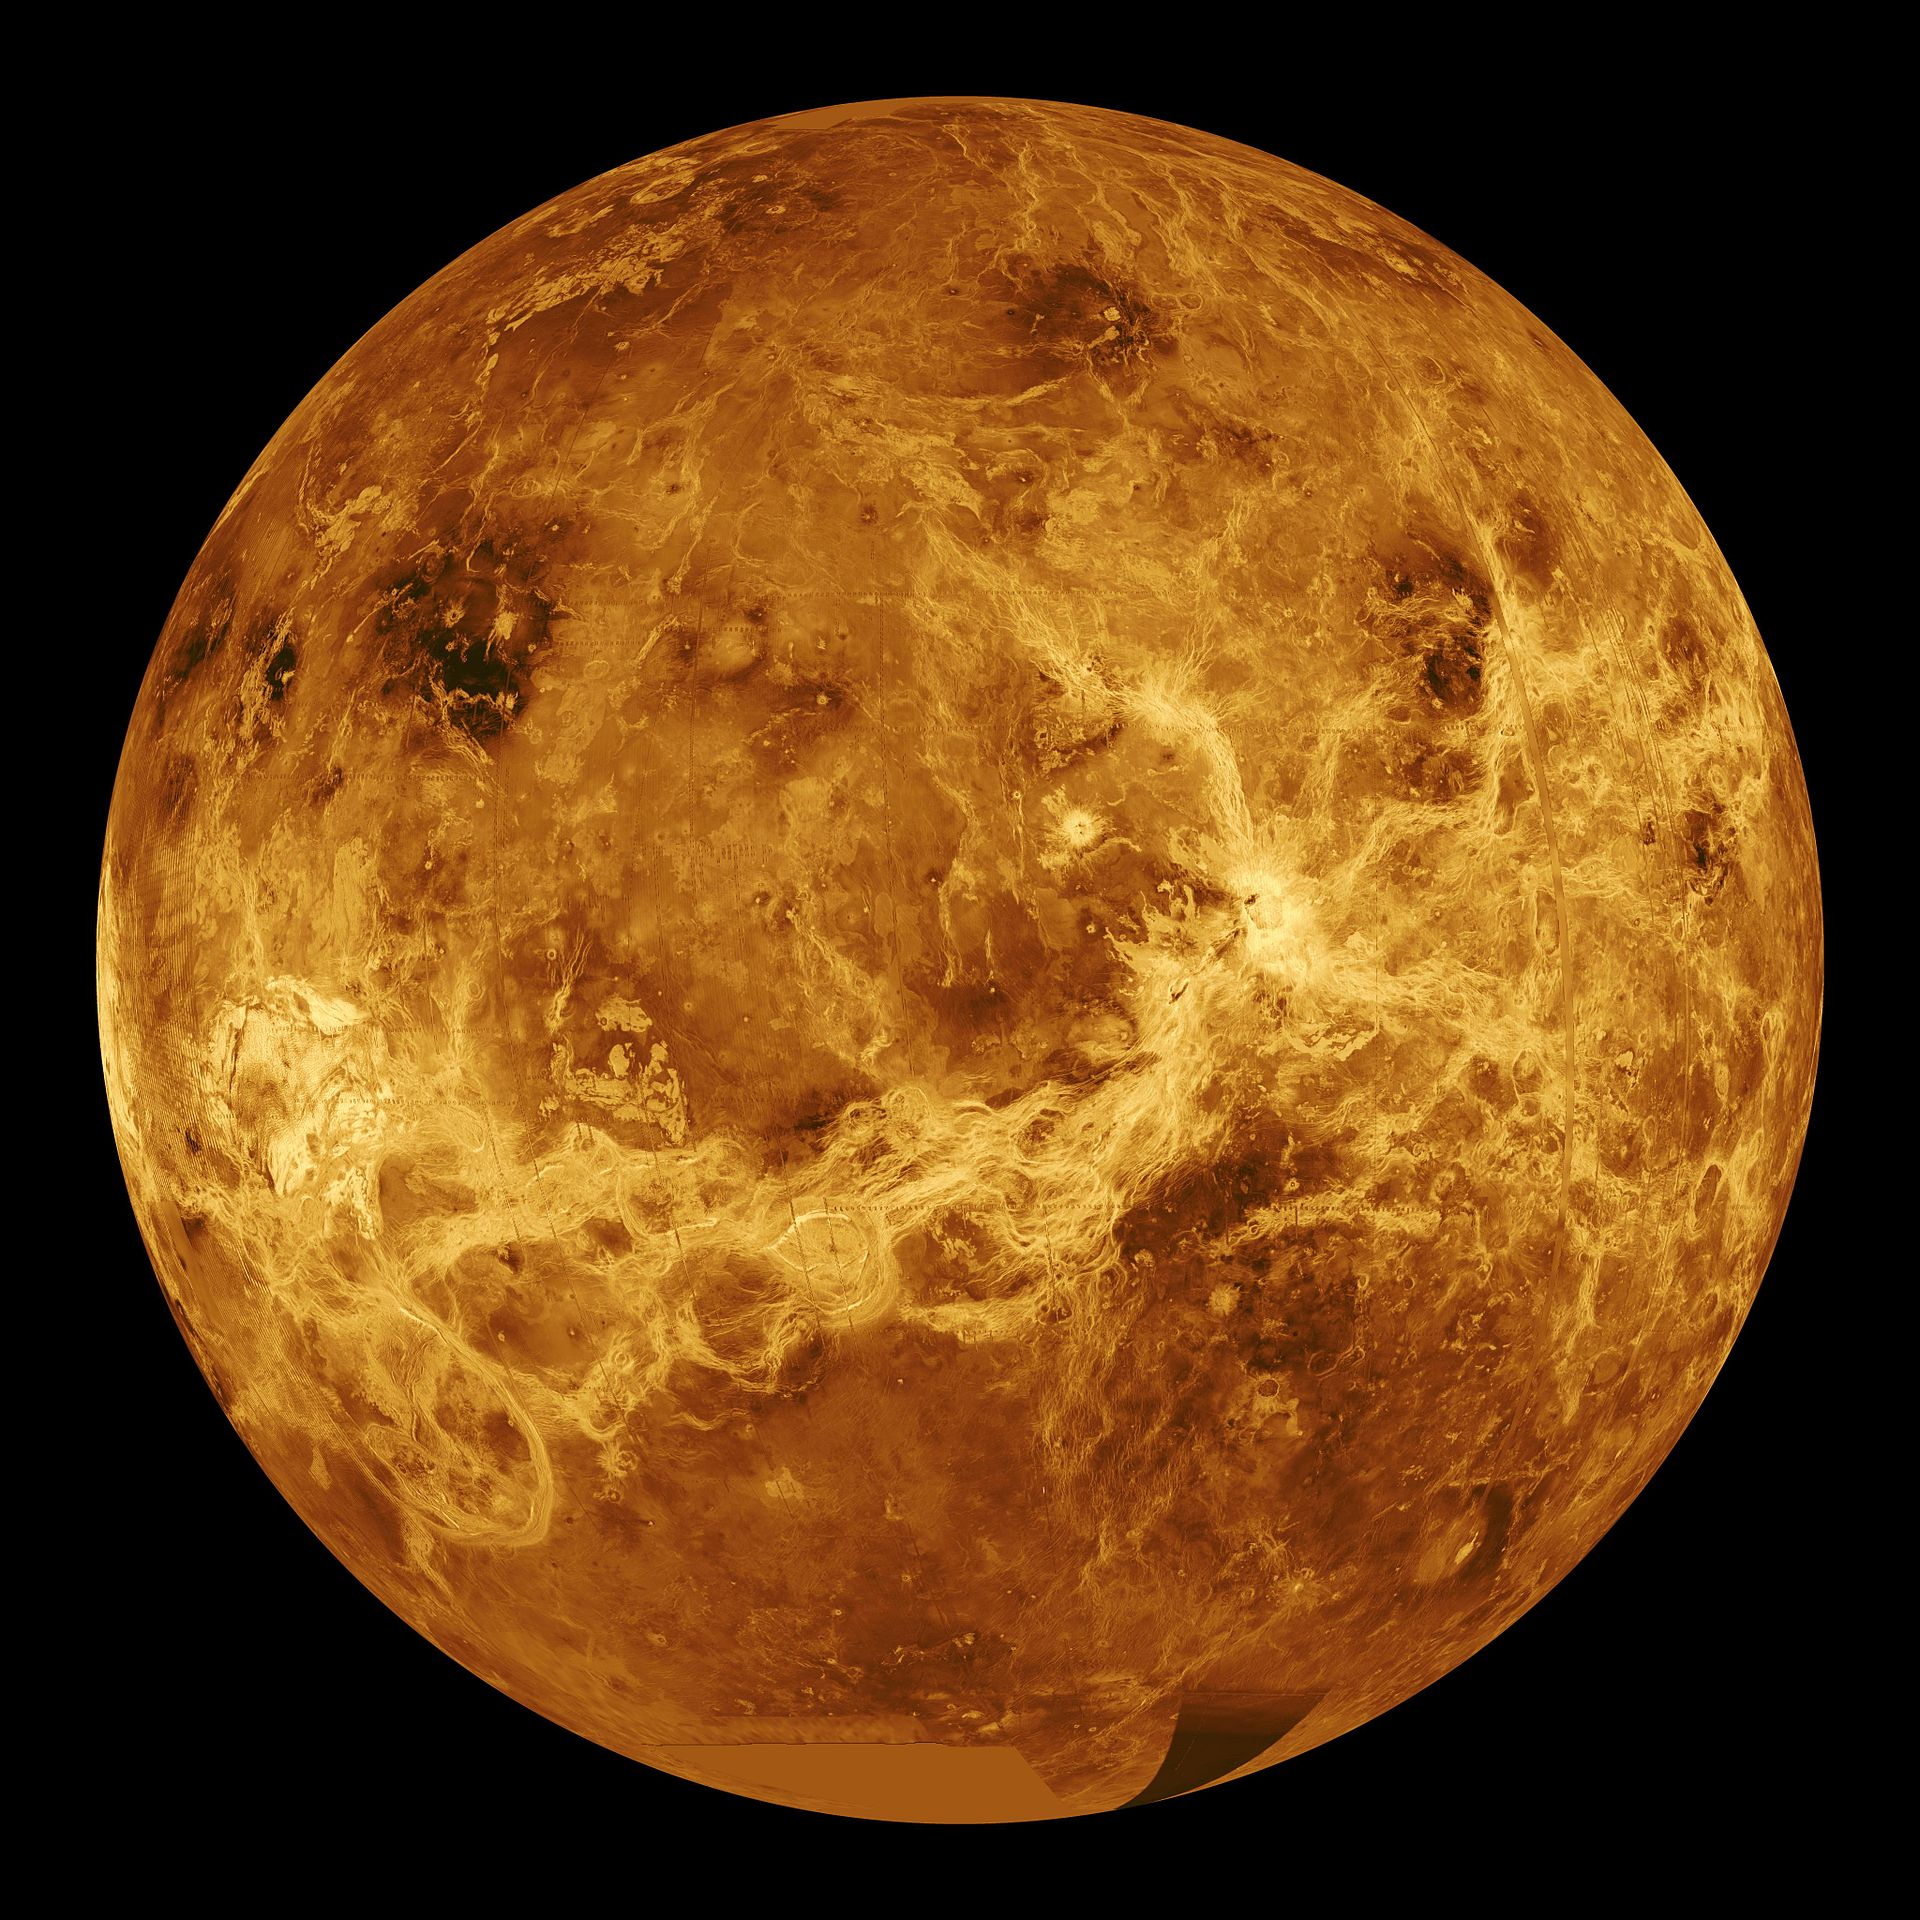 Radar image of the surface of Venus